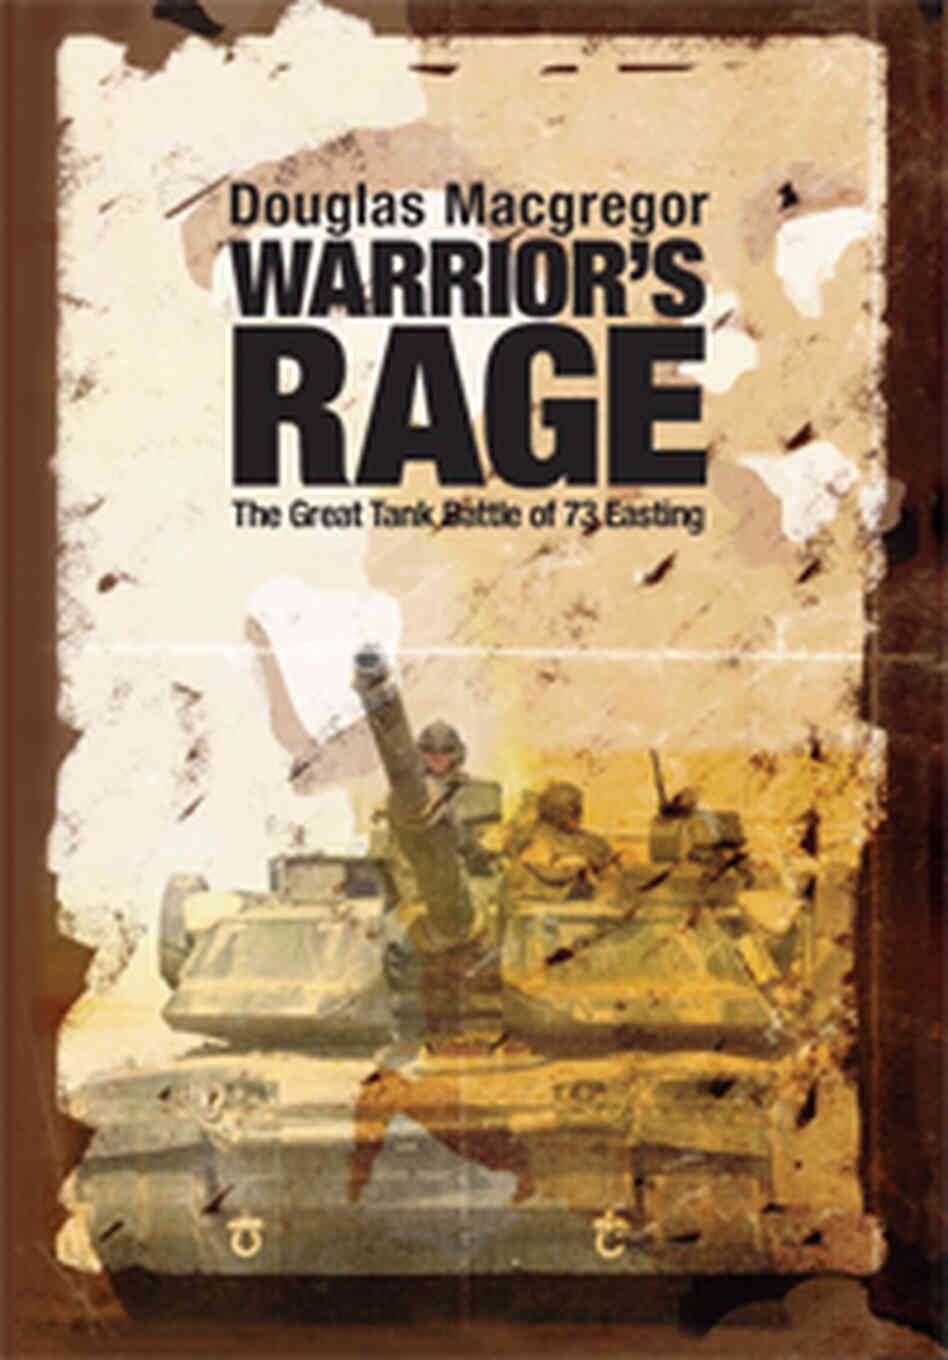 Warrior's Rage by Douglas Macgregor